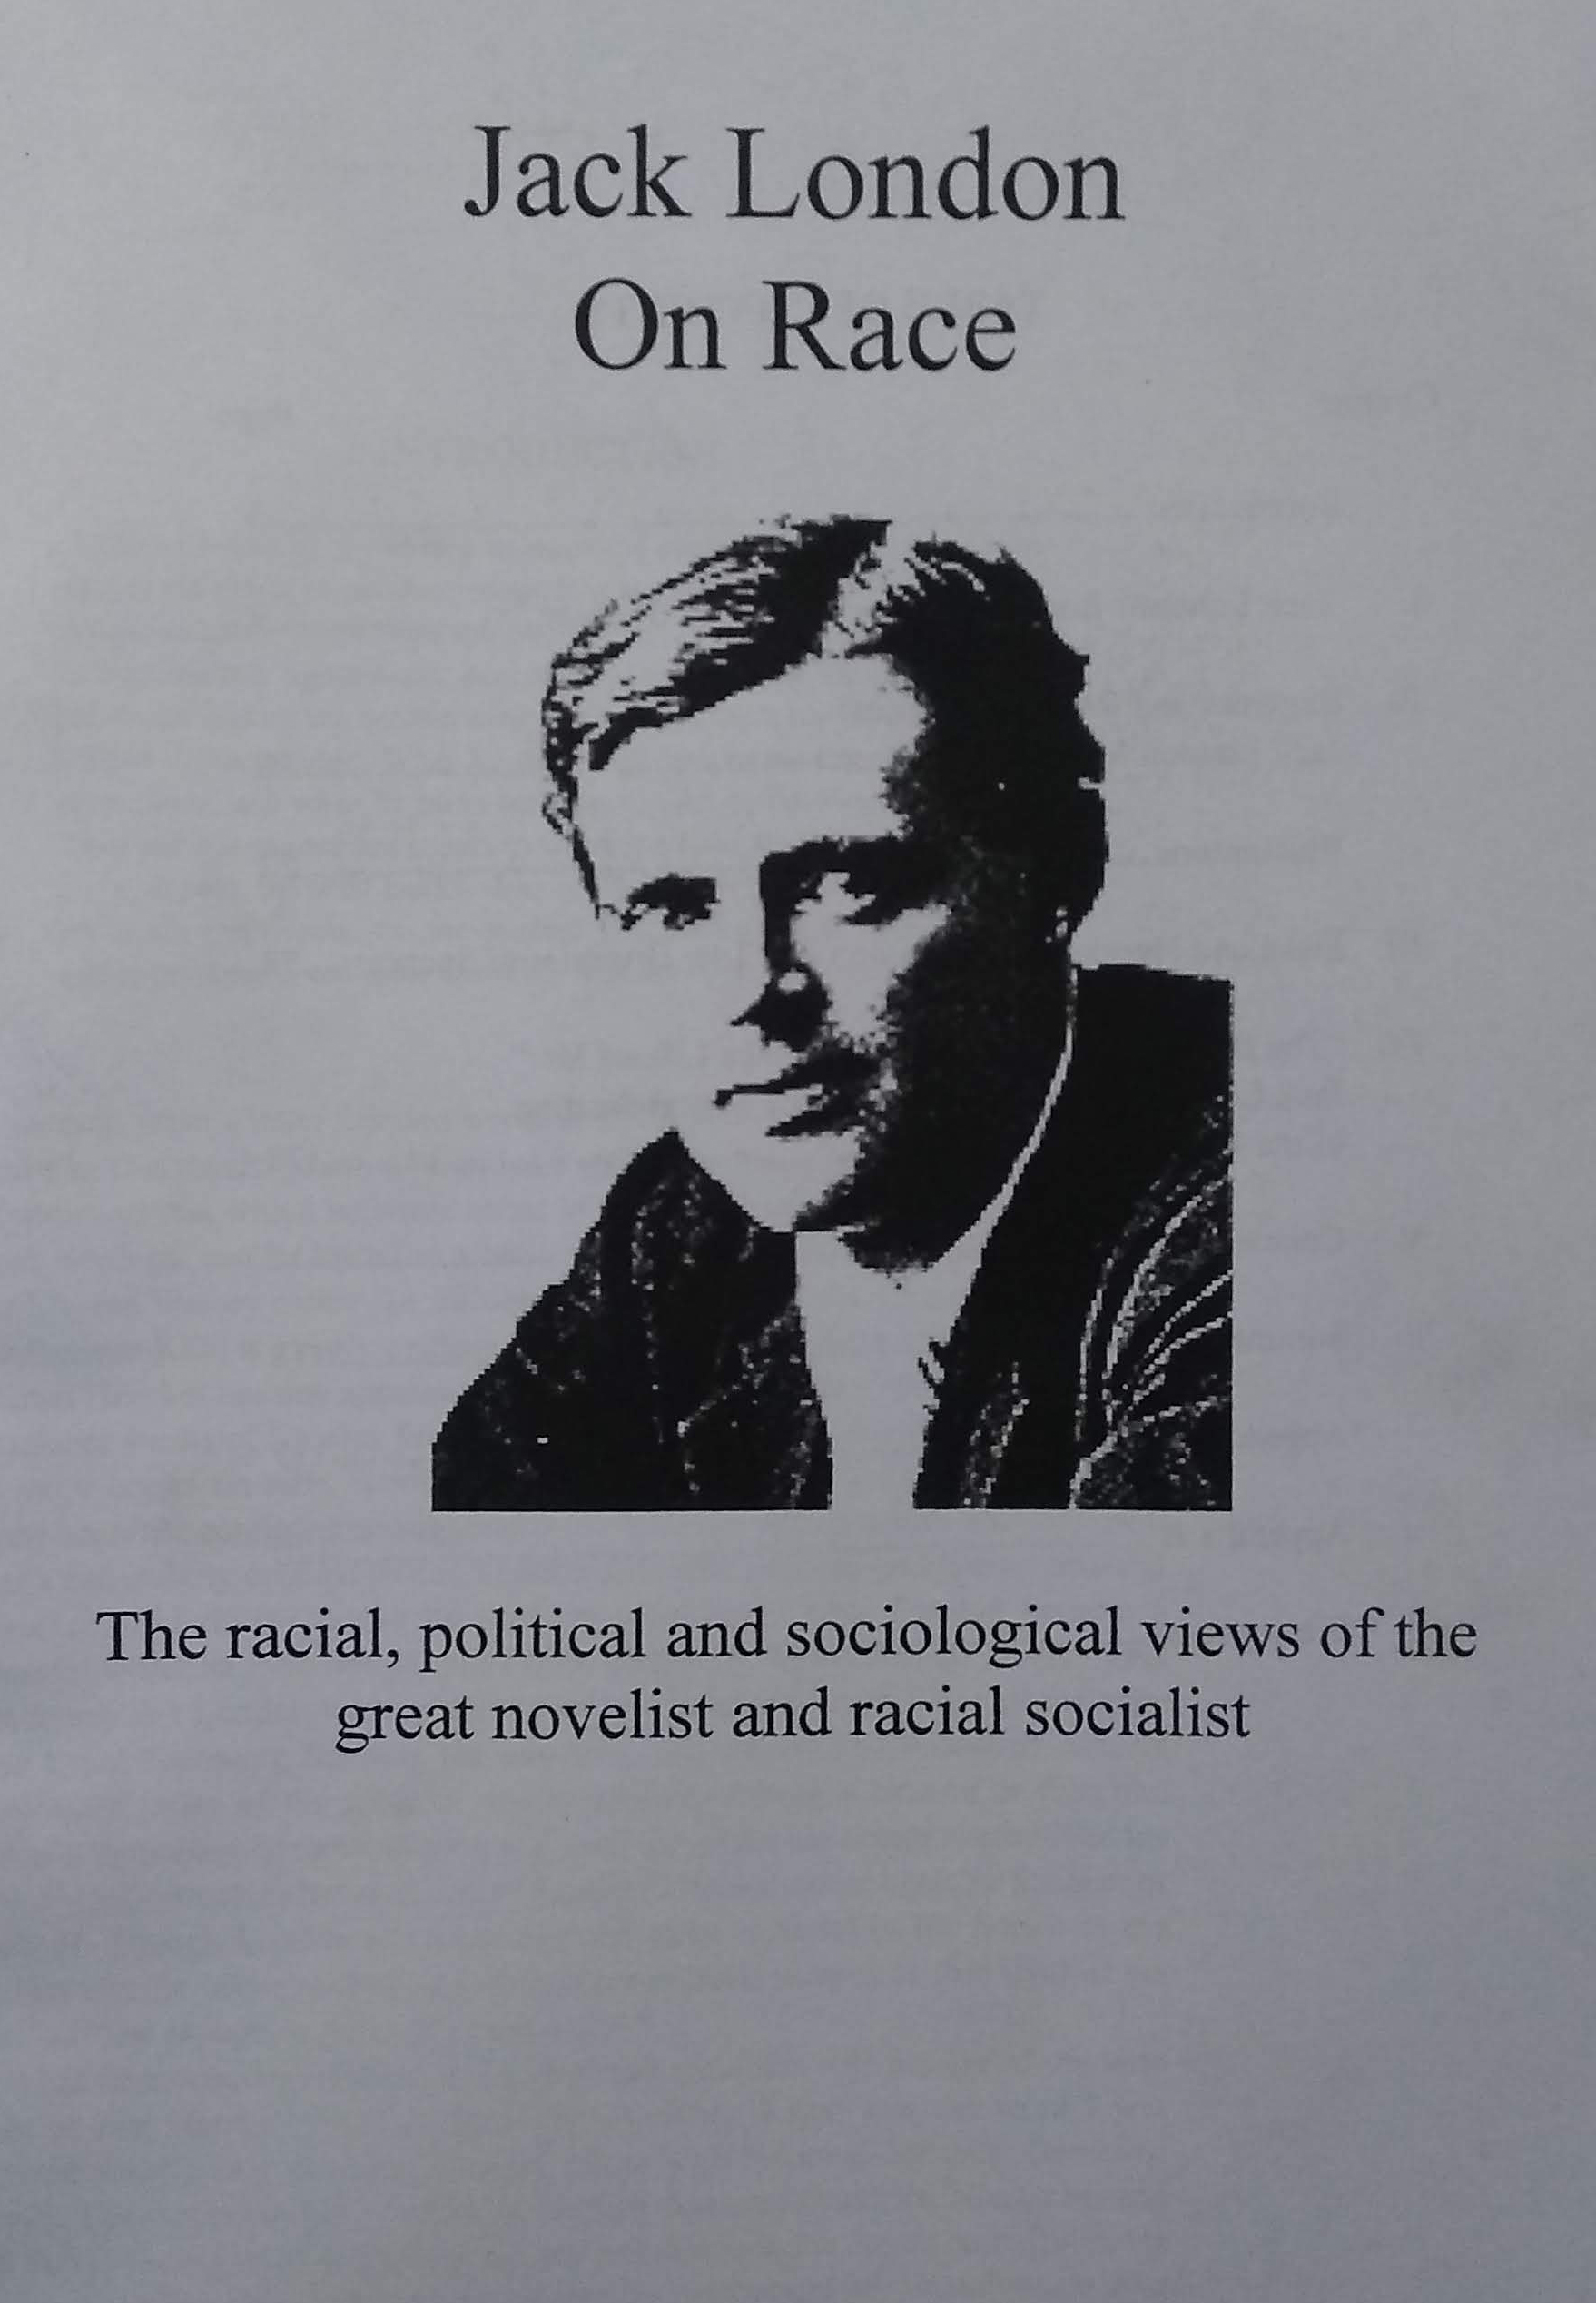 Jack London on race